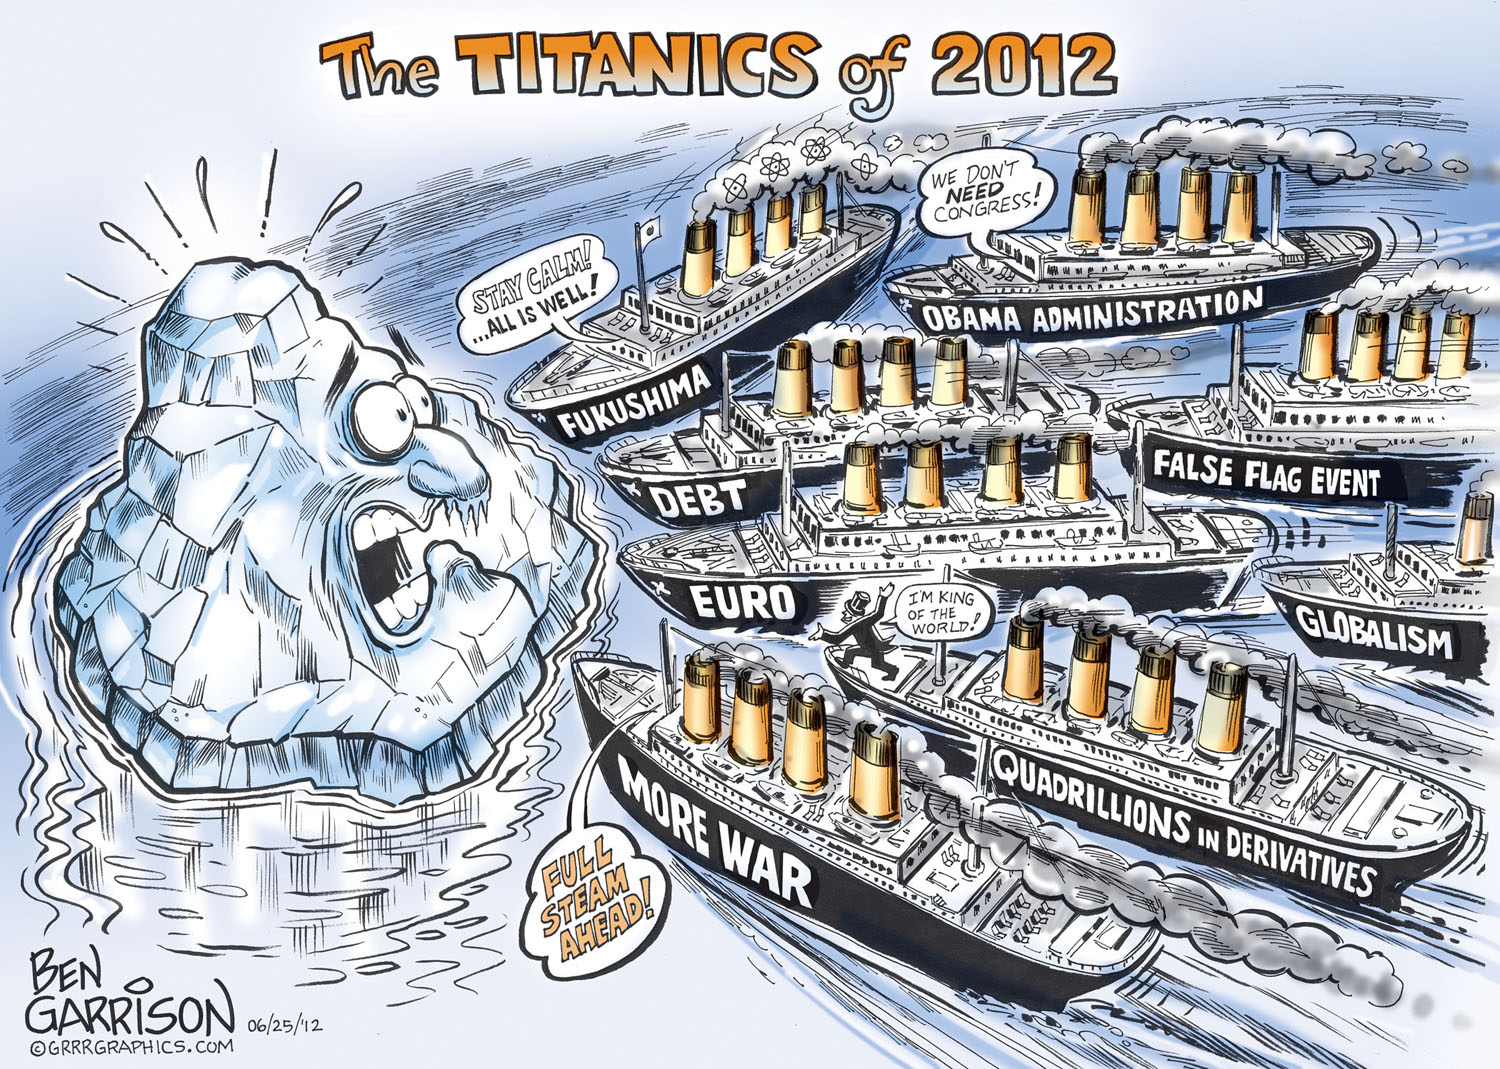 Drawn titanic cartoon On 2012 30 The GrrrGraphics